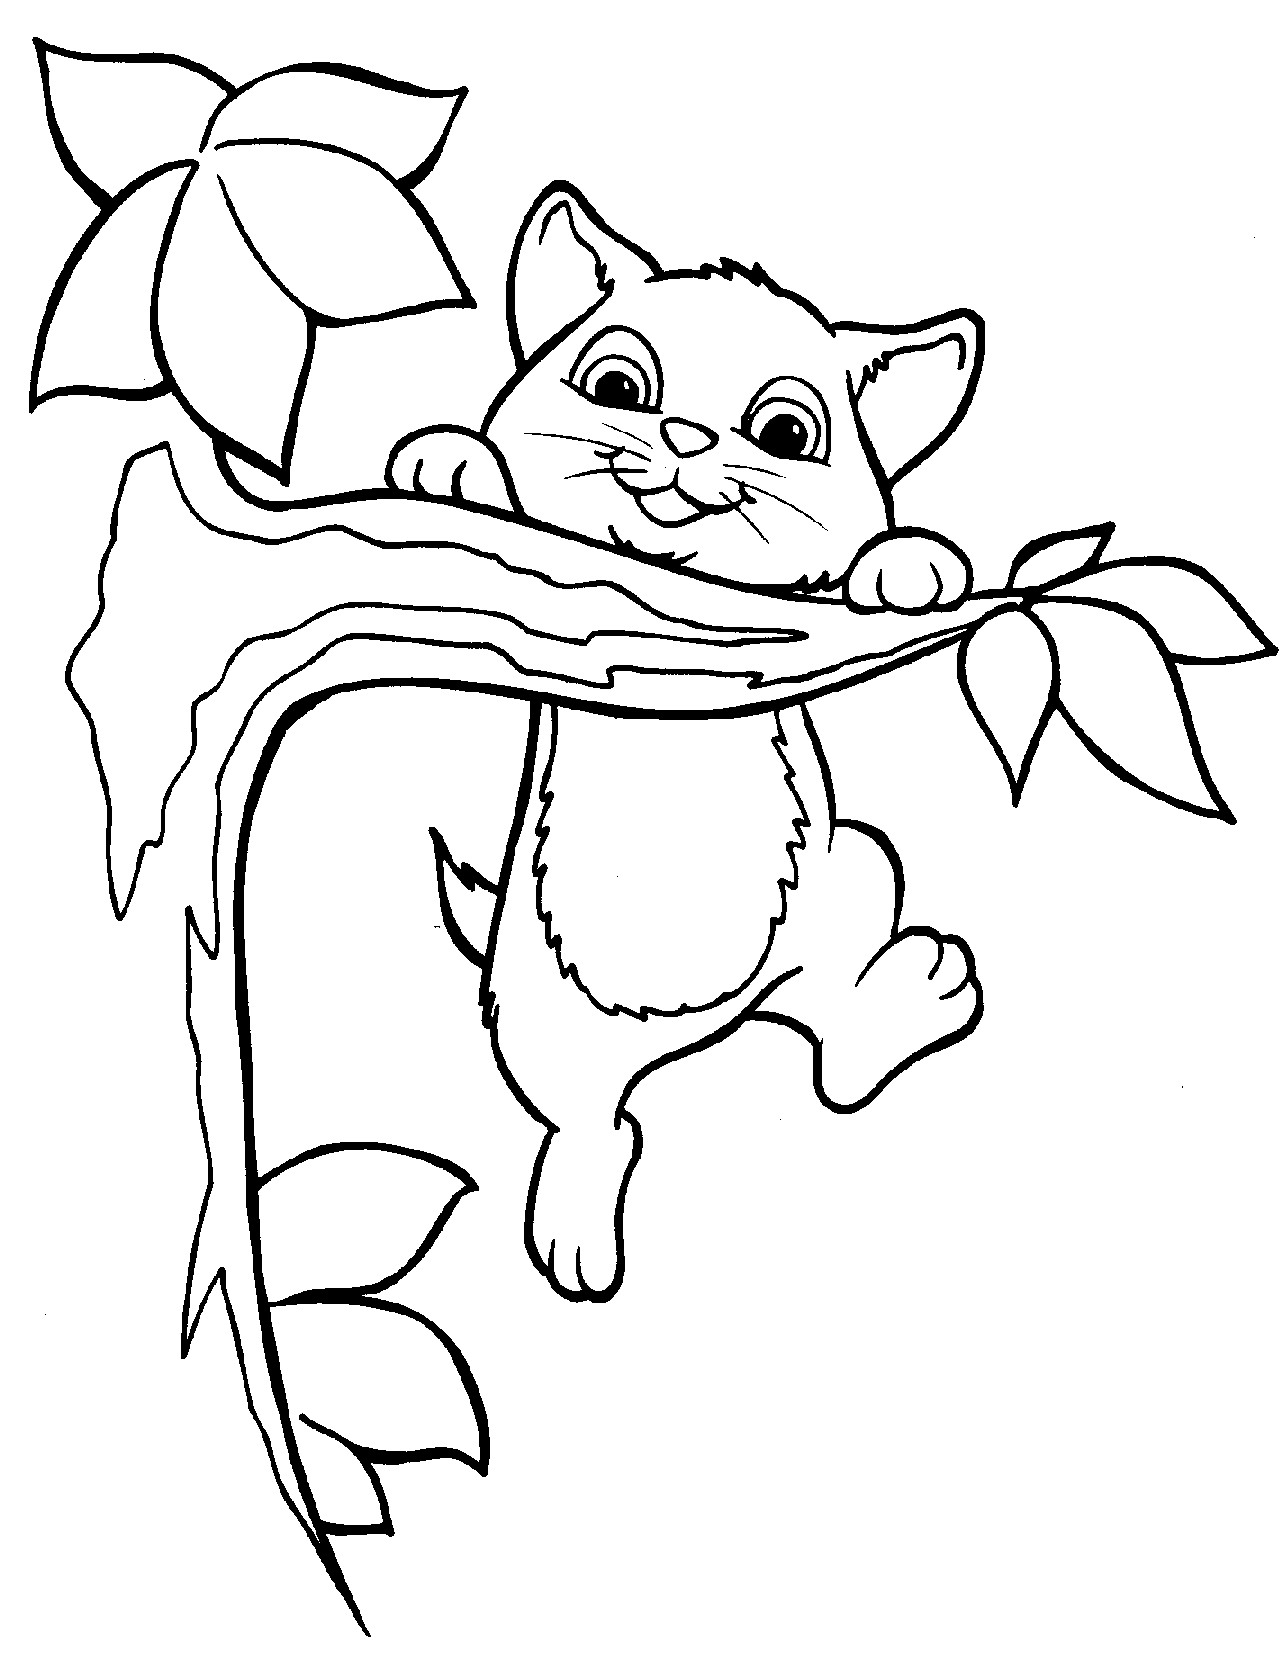 1282x1662 Cute Kitten Coloring Pages